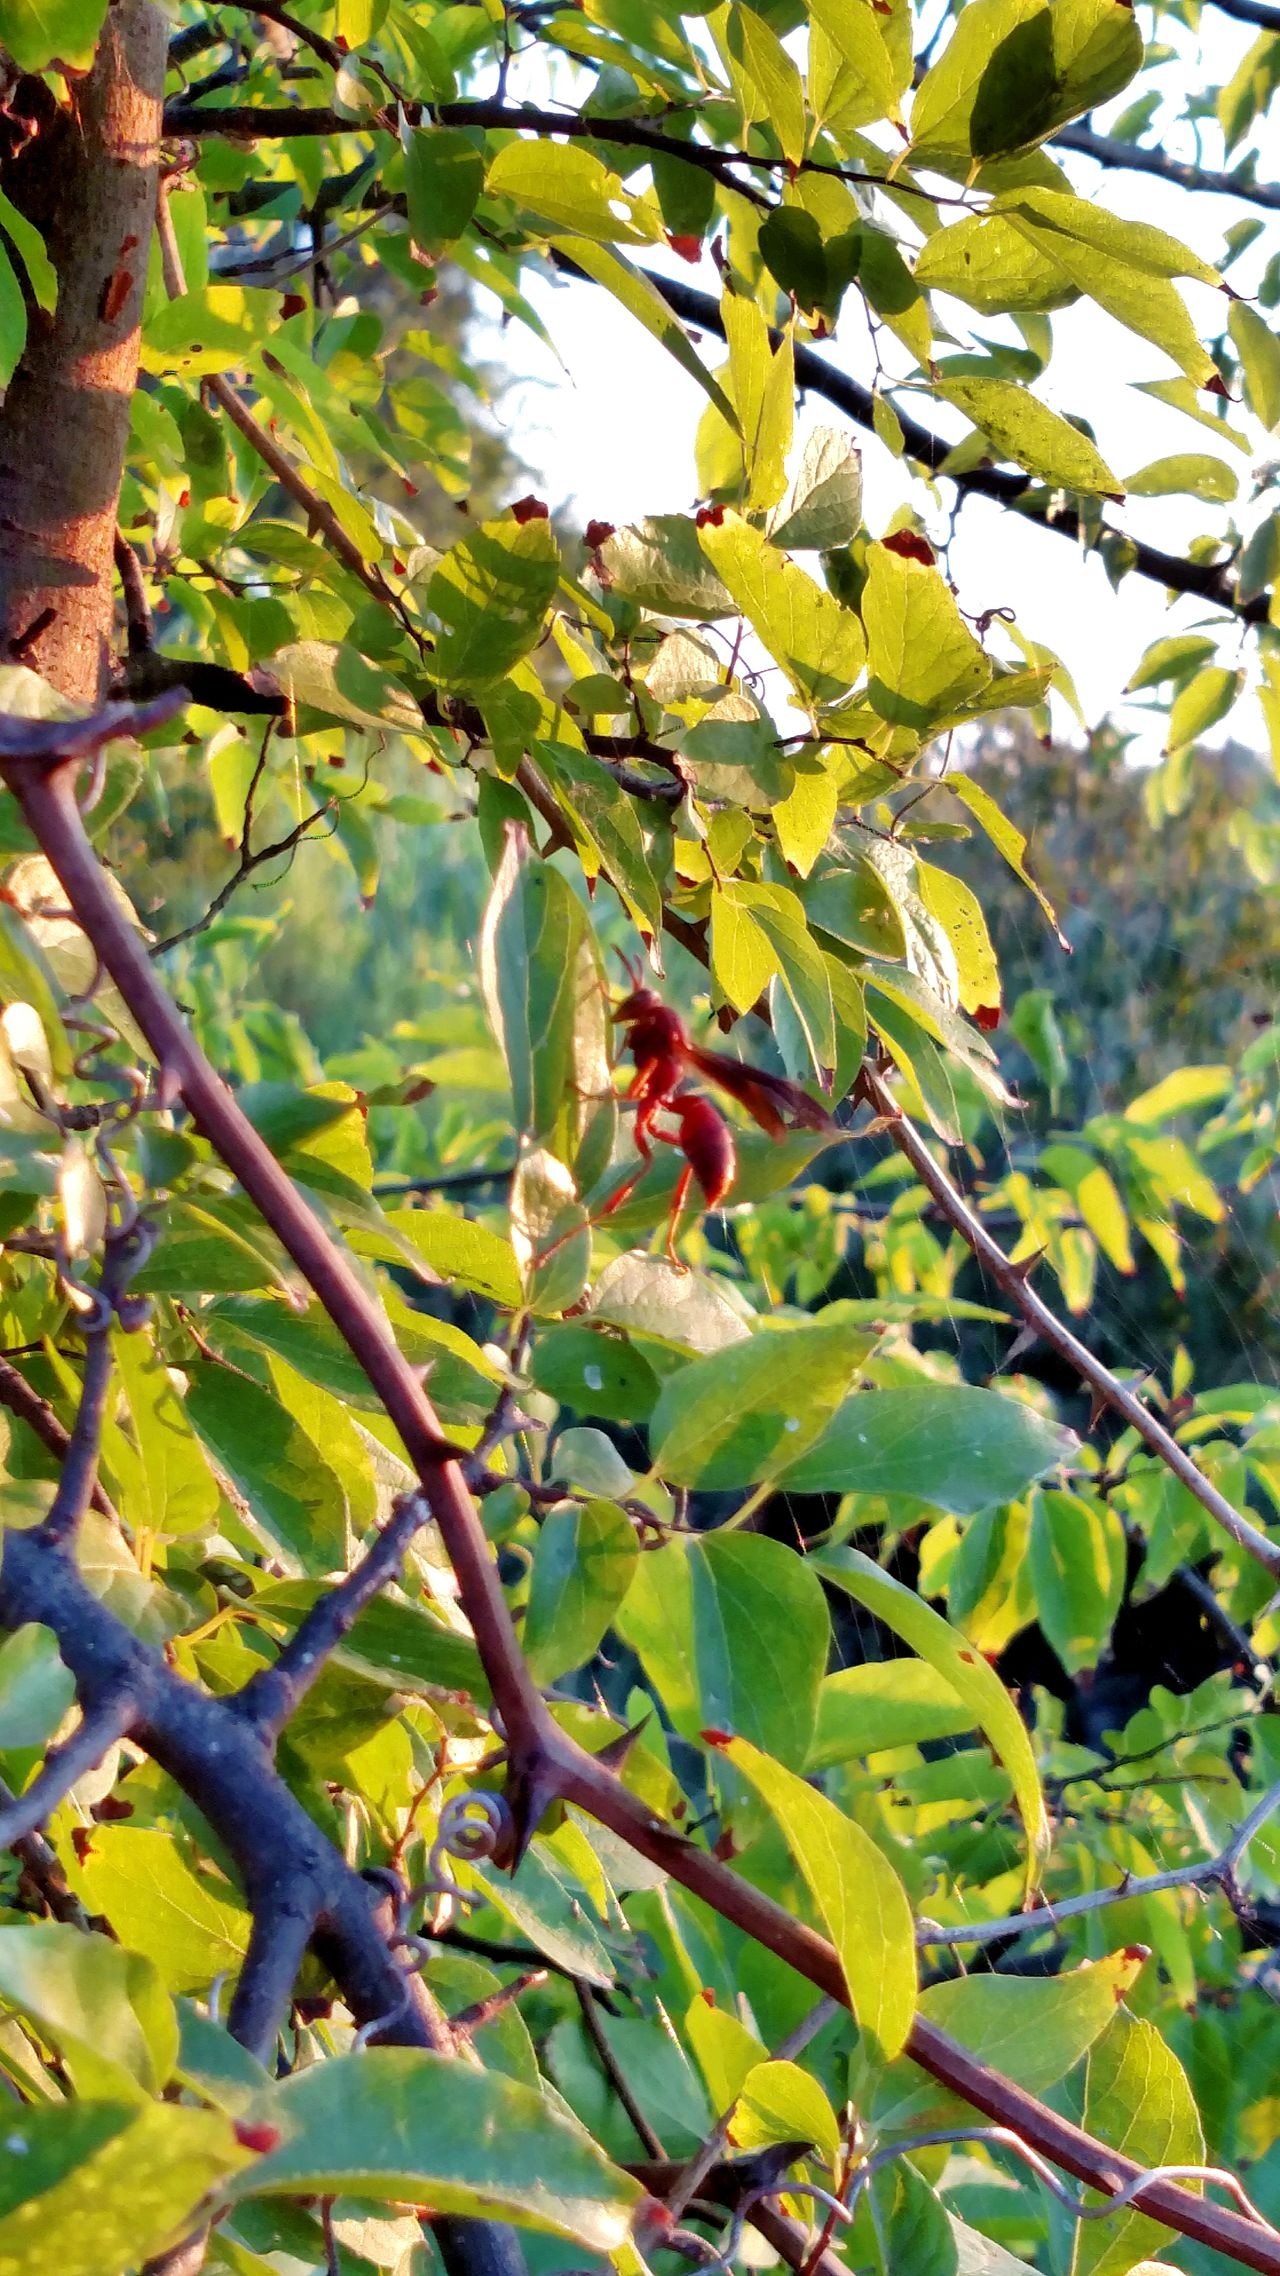 Looks like I'm not the only one enjoying the sunrise this morning. This Red Wasp was staying close by but did not bother me a bit. Eyem Best Shots Morning Light Check This Out Martin Lake State Park EyeEm Nature Lover Summertime Sunrise_Collection Dew Drops Eyem Market Buzzing Around Appreciation Appreciating This Moment